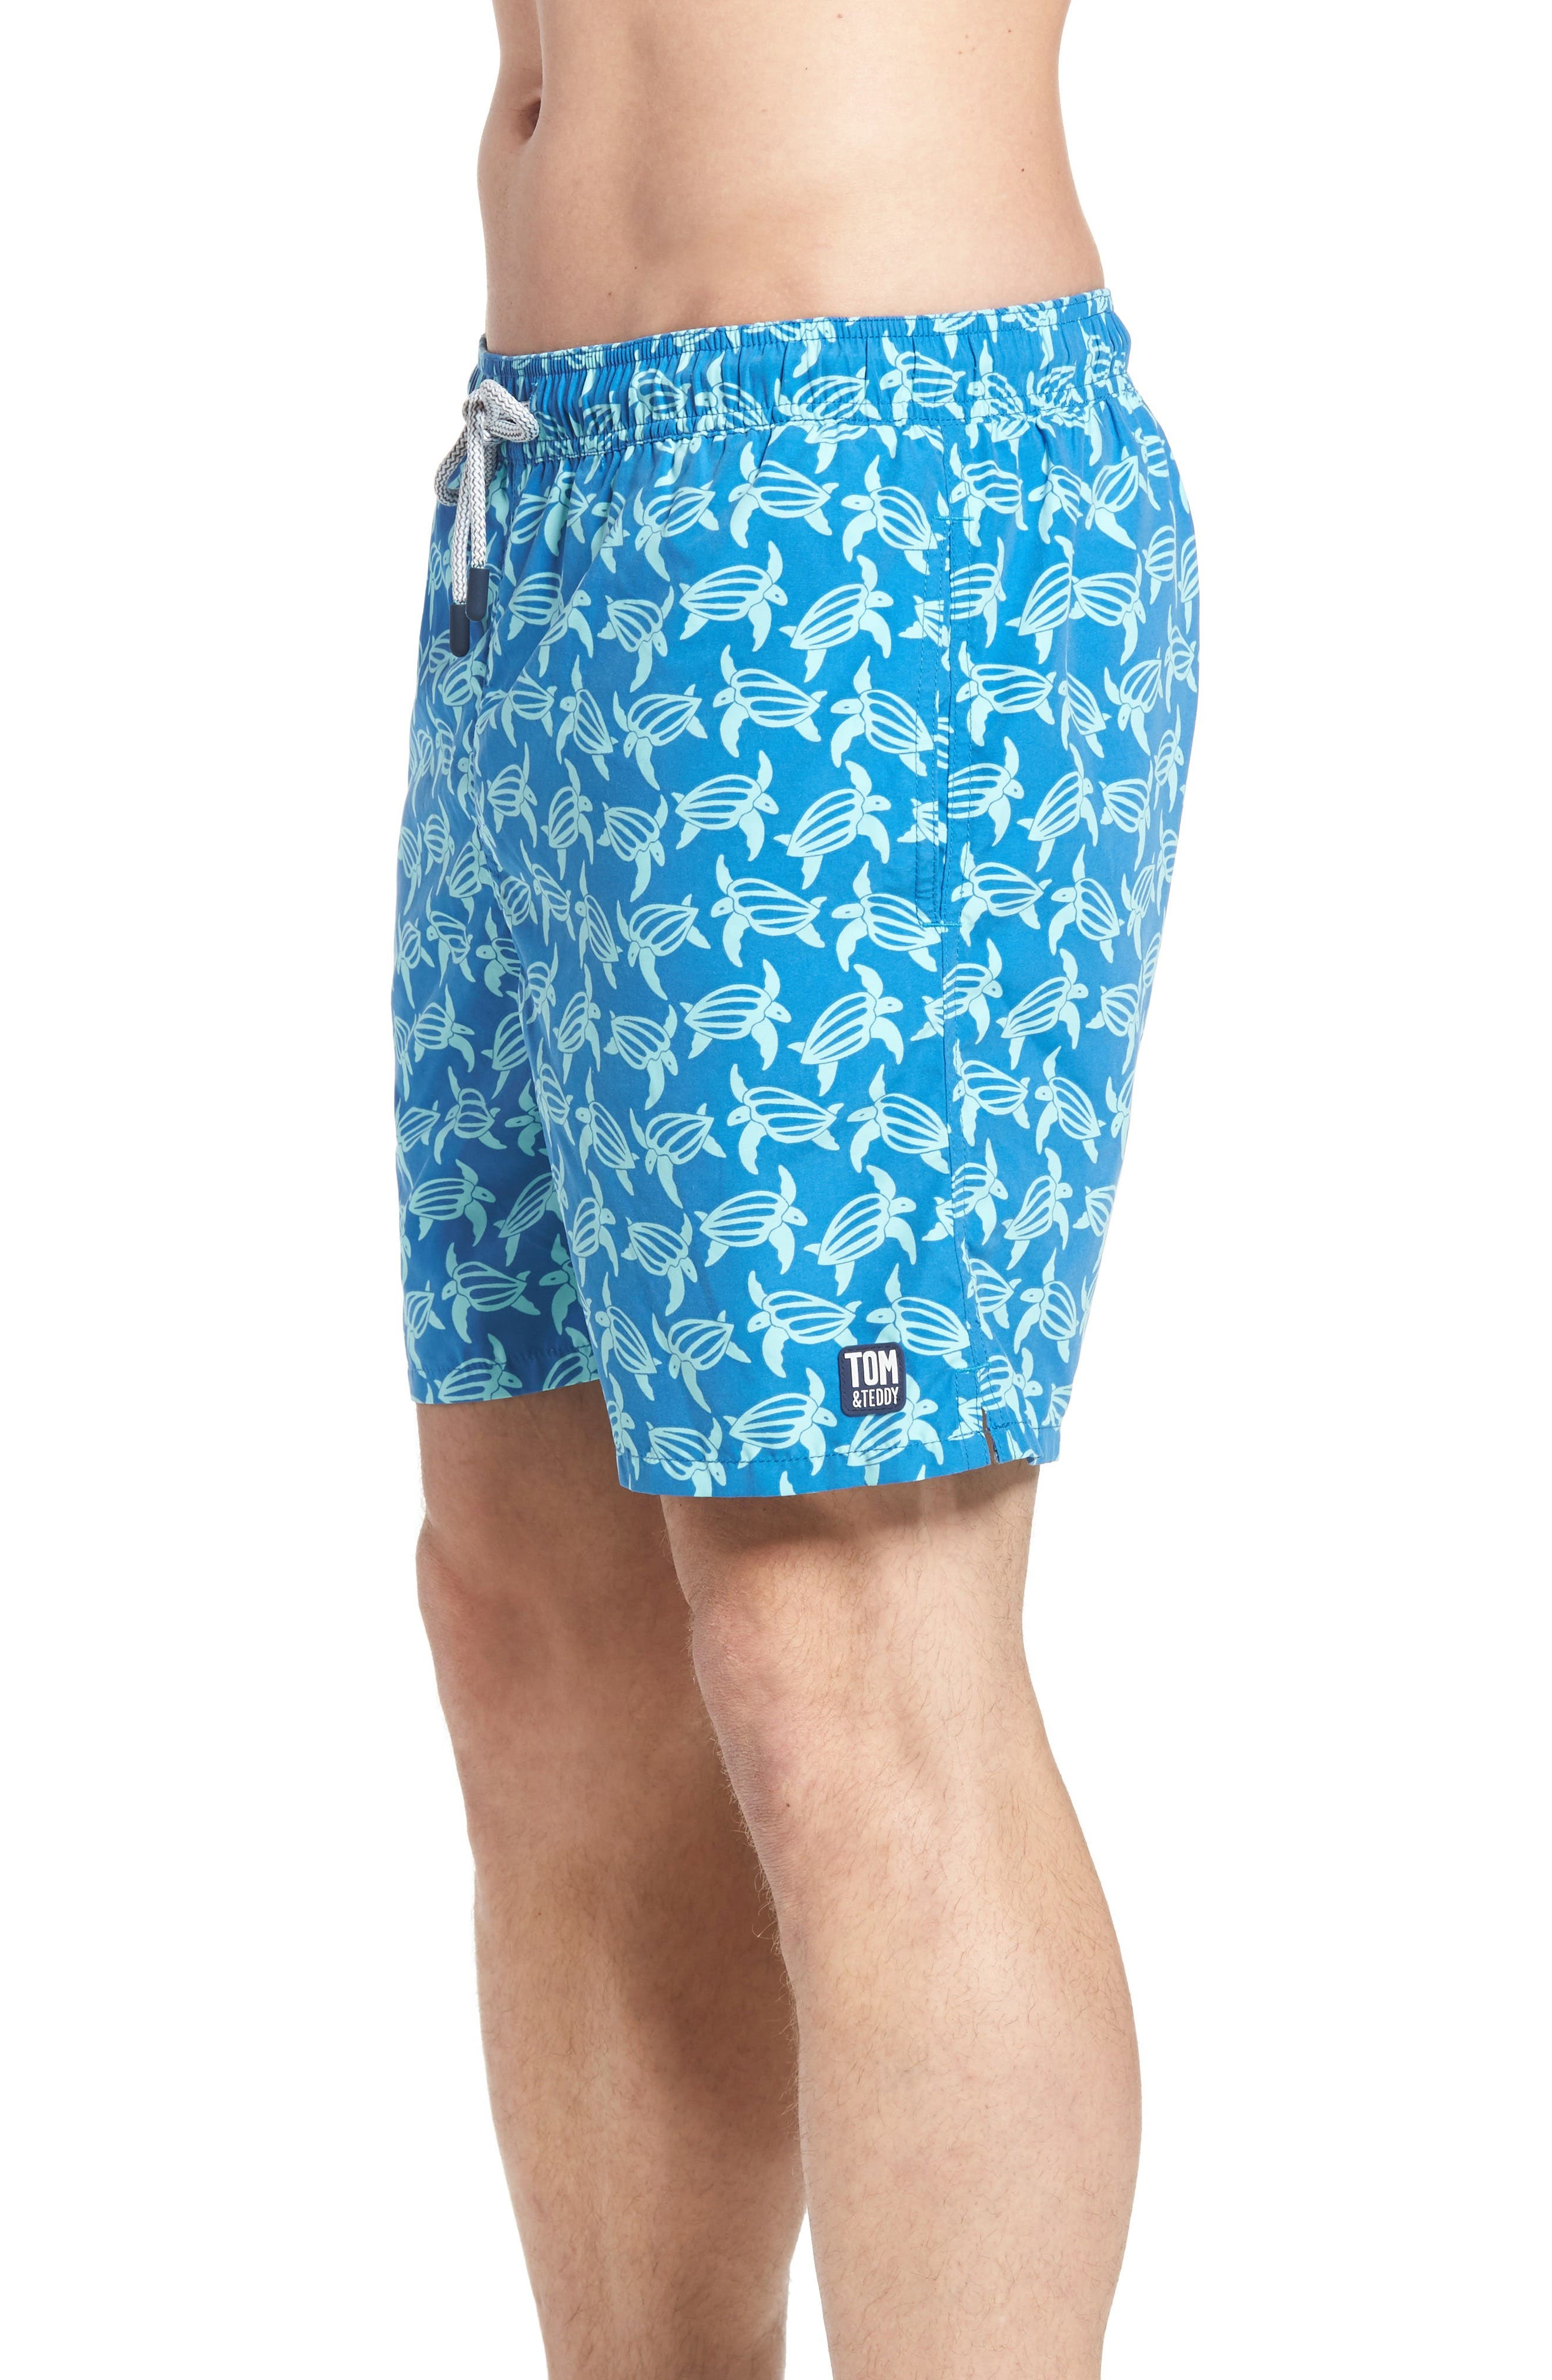 Turtle Print Swim Trunks,                             Alternate thumbnail 3, color,                             MID BLUE AND SKY